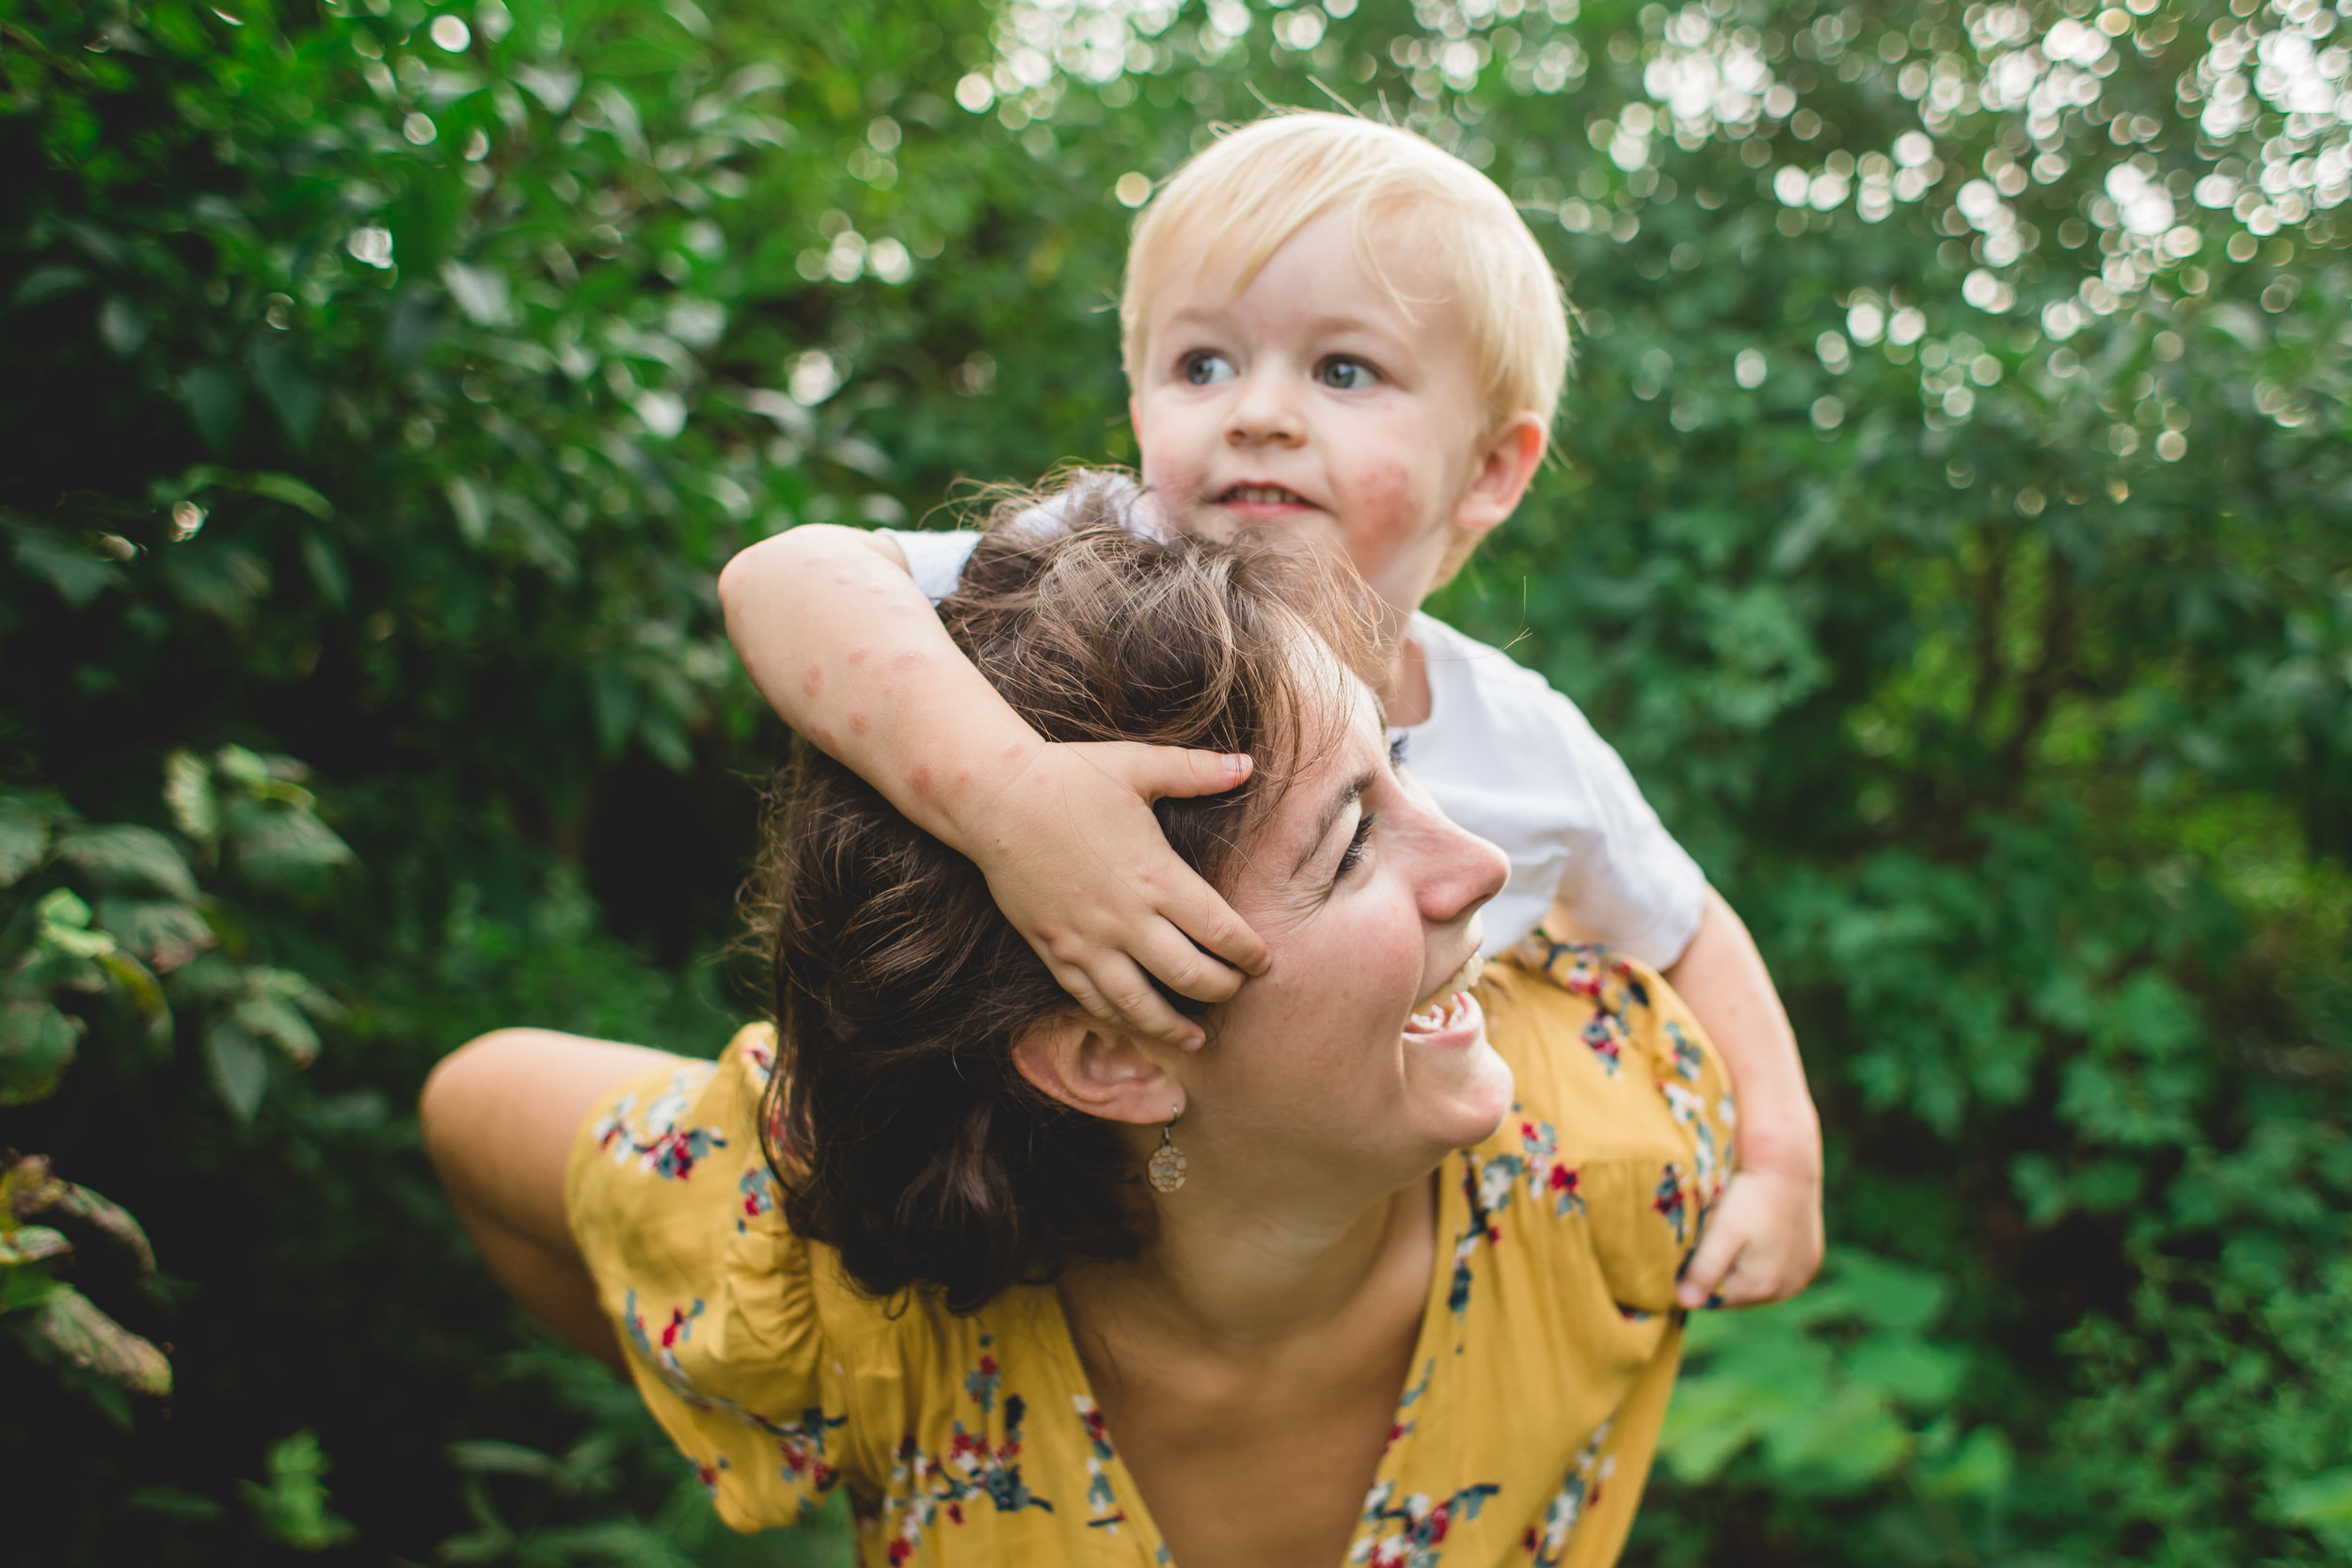 Outside of shoots, you'll likely find me being scaled by my energetic 3 year old son.  Photo credit: Lucy Baber